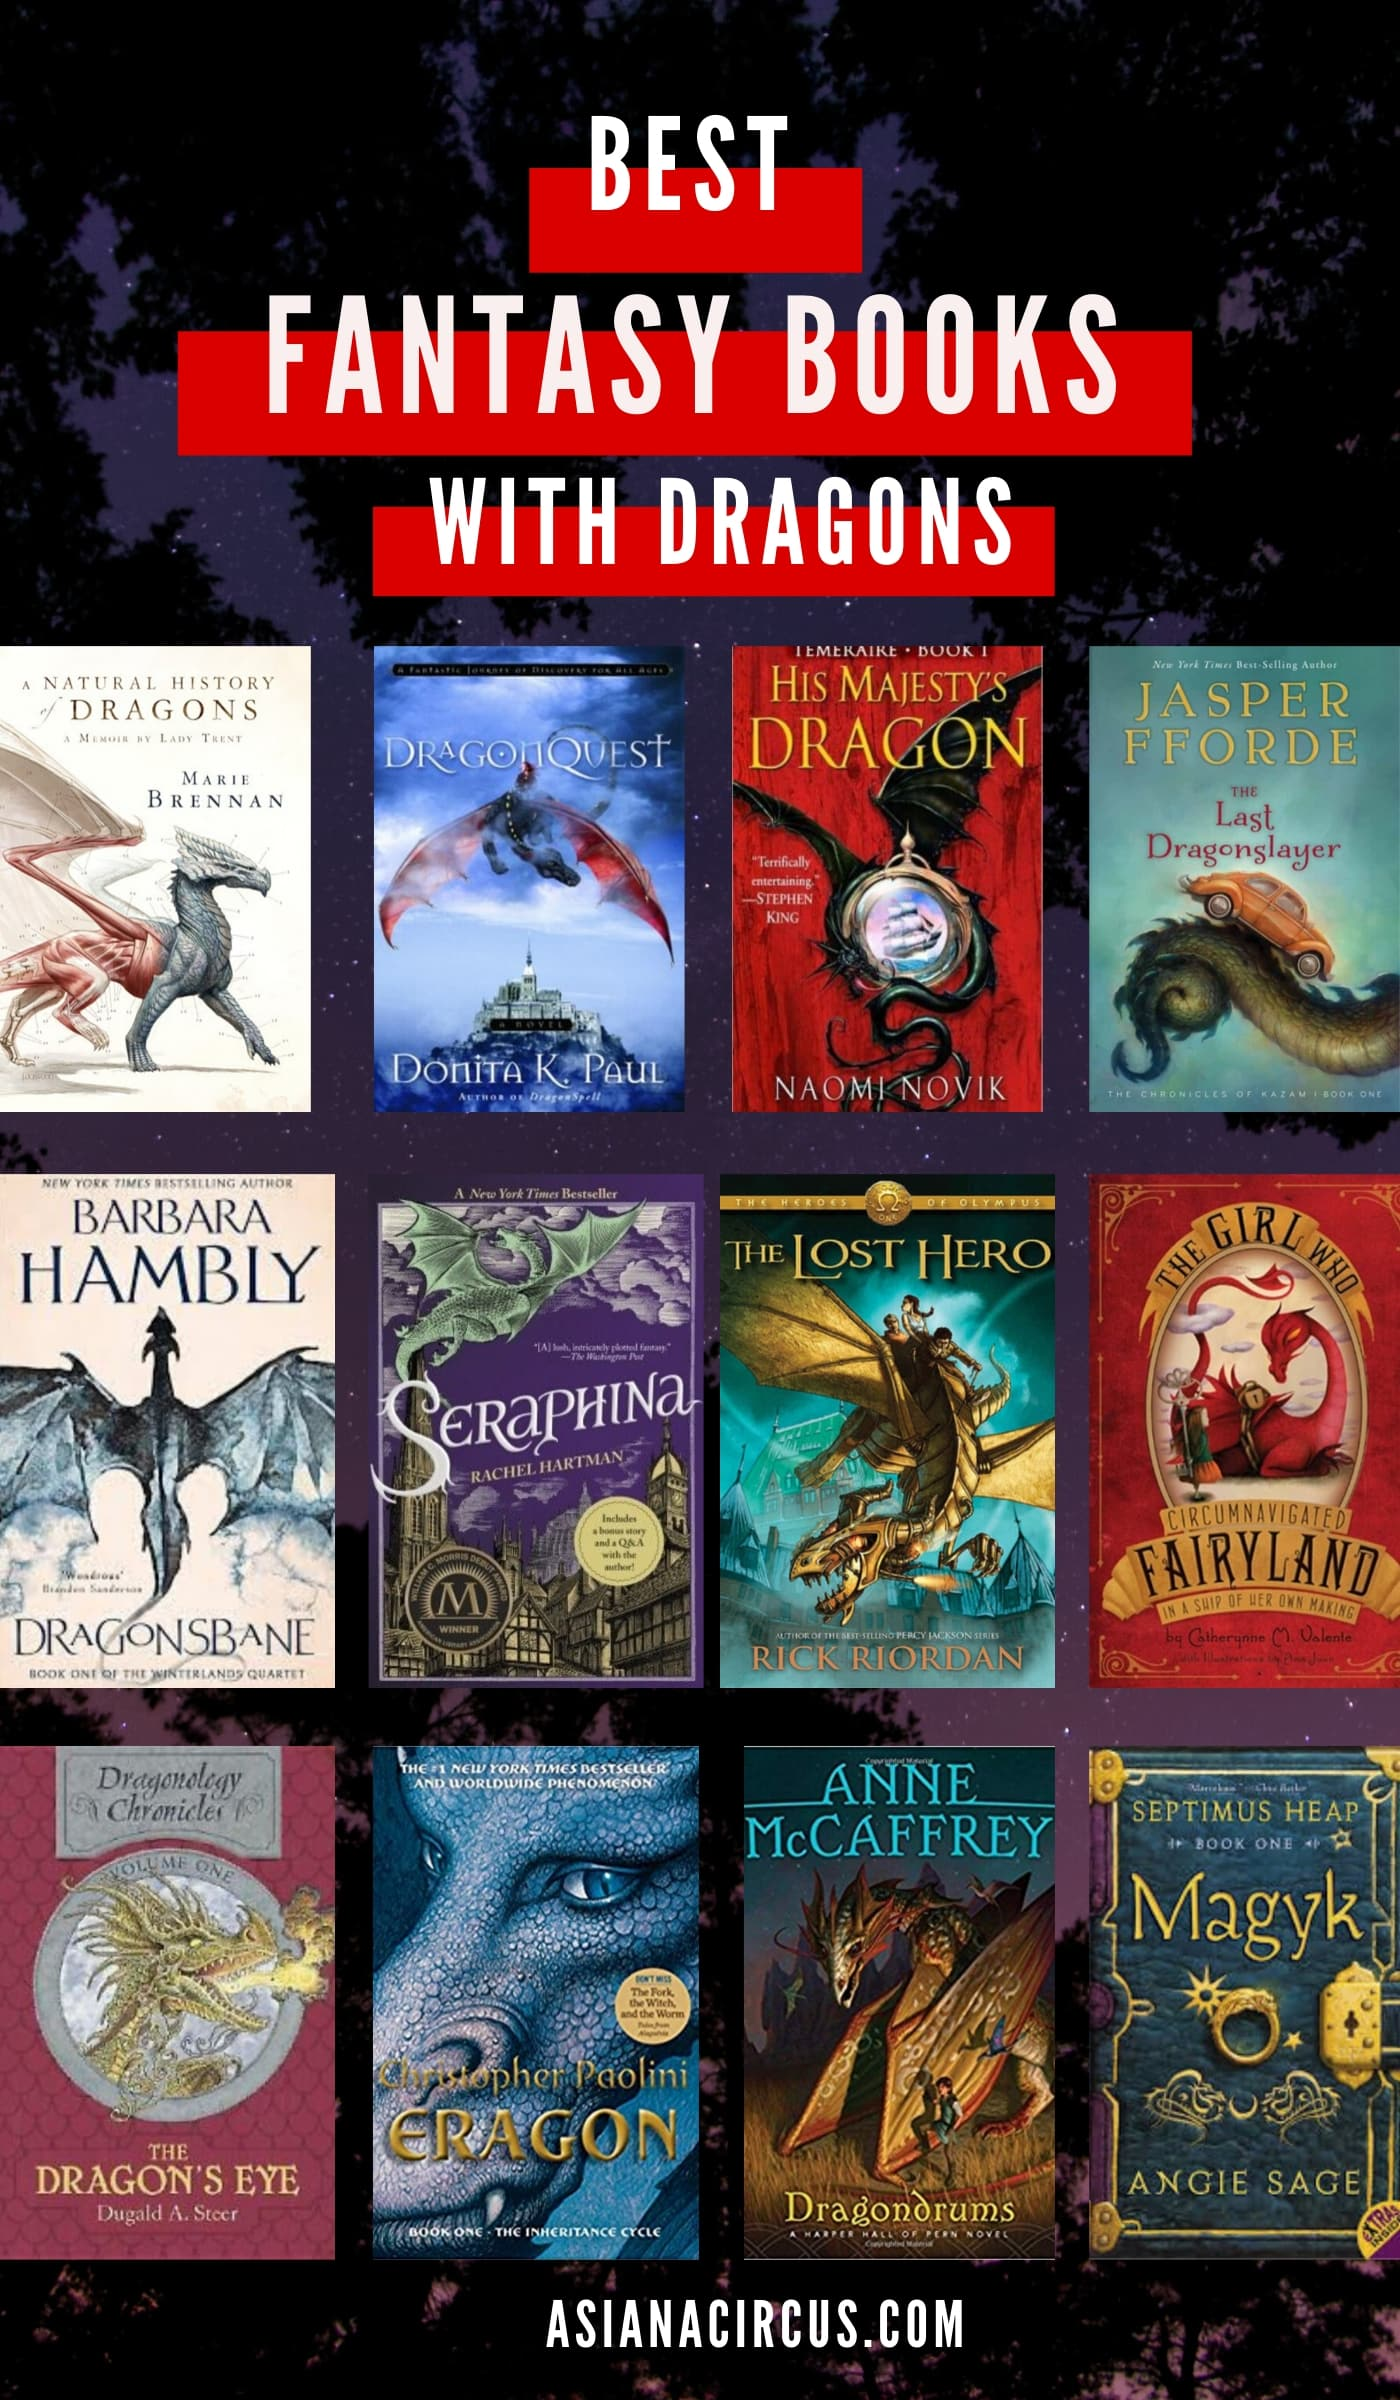 Must read fantasy dragon books - fantasy books with dragons